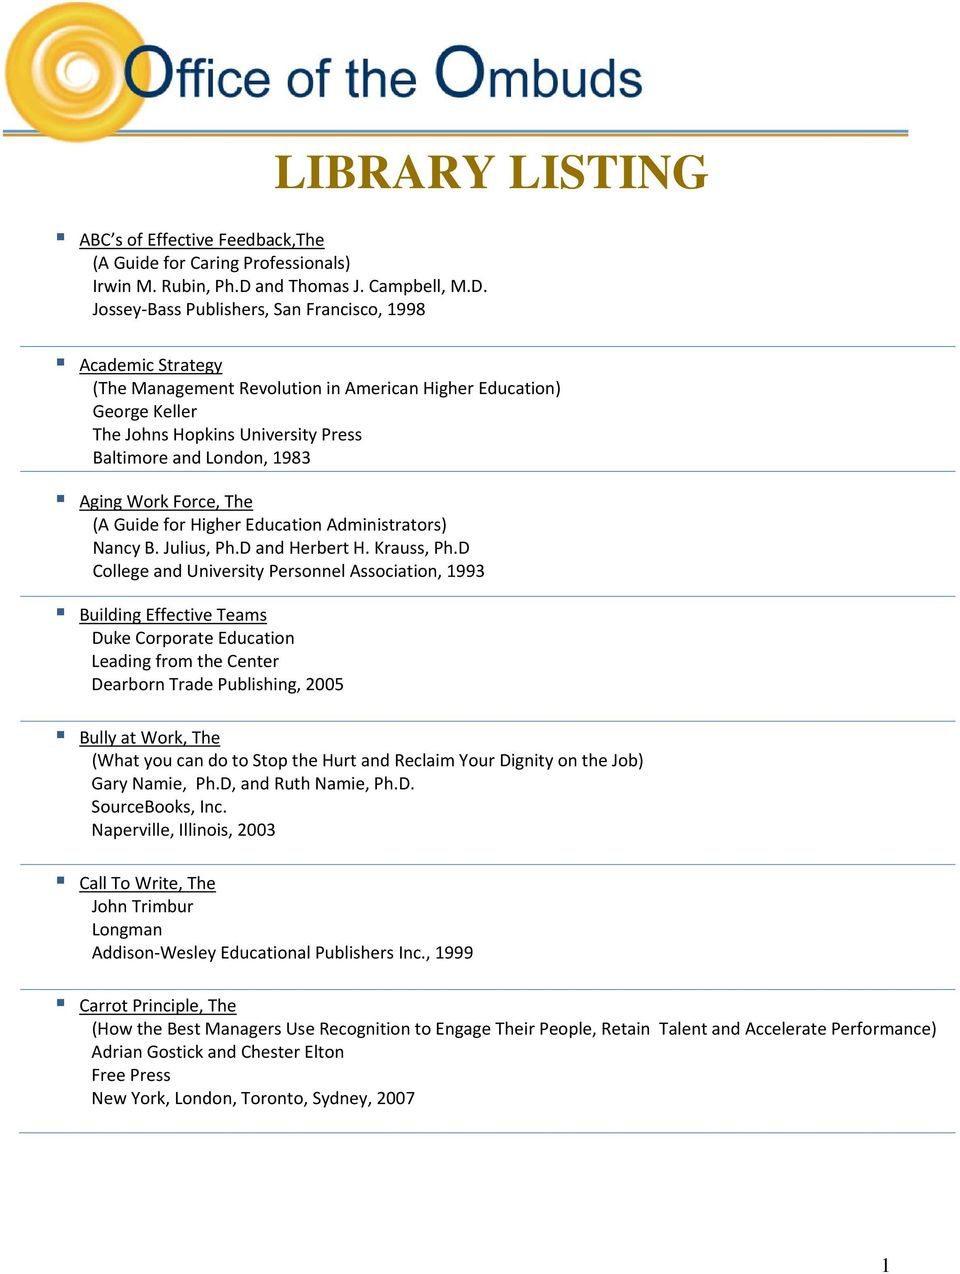 Jossey Bass Publishers, San Francisco, 1998 LIBRARY LISTING Academic Strategy (The Management Revolution in American Higher Education) George Keller The Johns Hopkins University Press Baltimore and